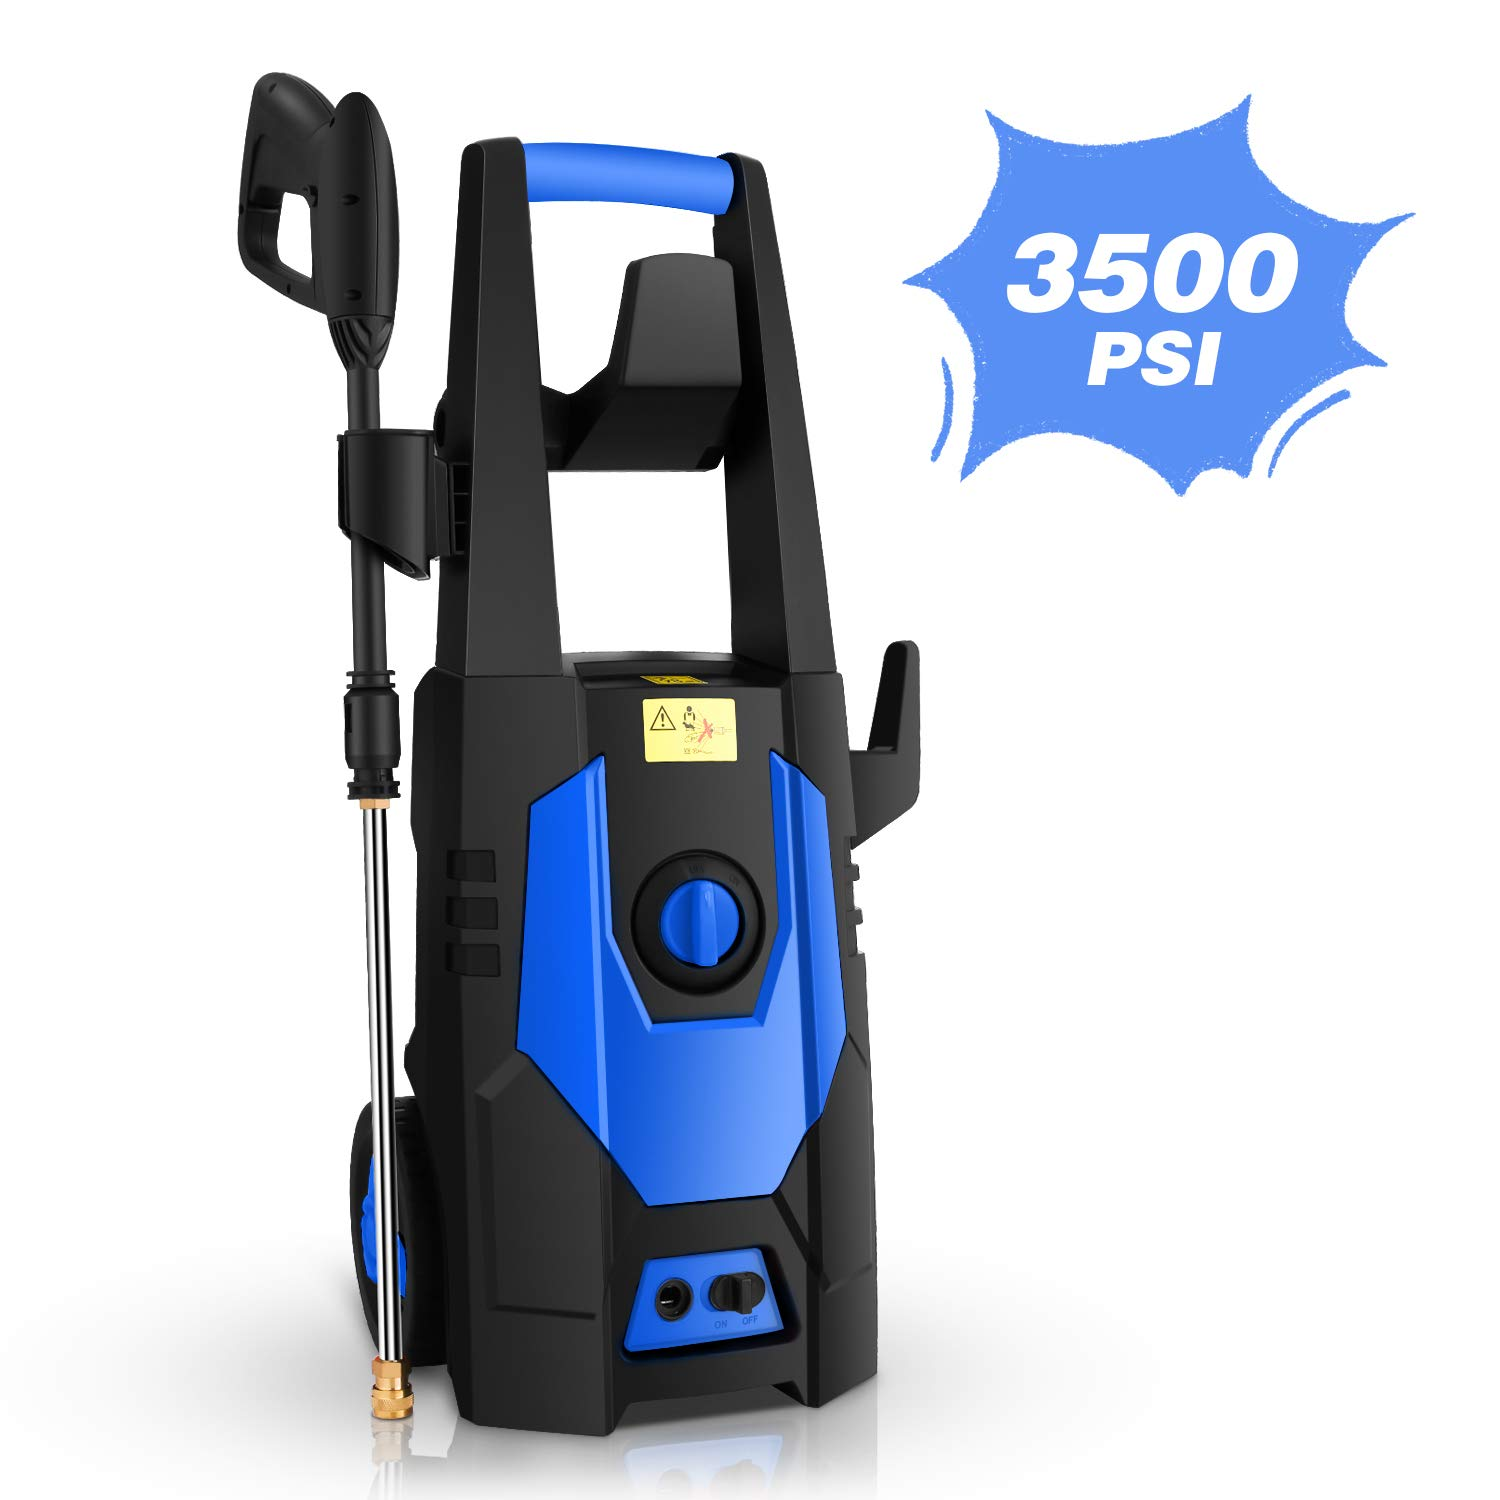 mrliance 3500PSI Electric Pressure Washer, 2.0GPM Electric Power Washer High Pressure Washer with Spray Gun, Brush, and 4 Quick-Connect Spray Tip (Blue) by mrliance